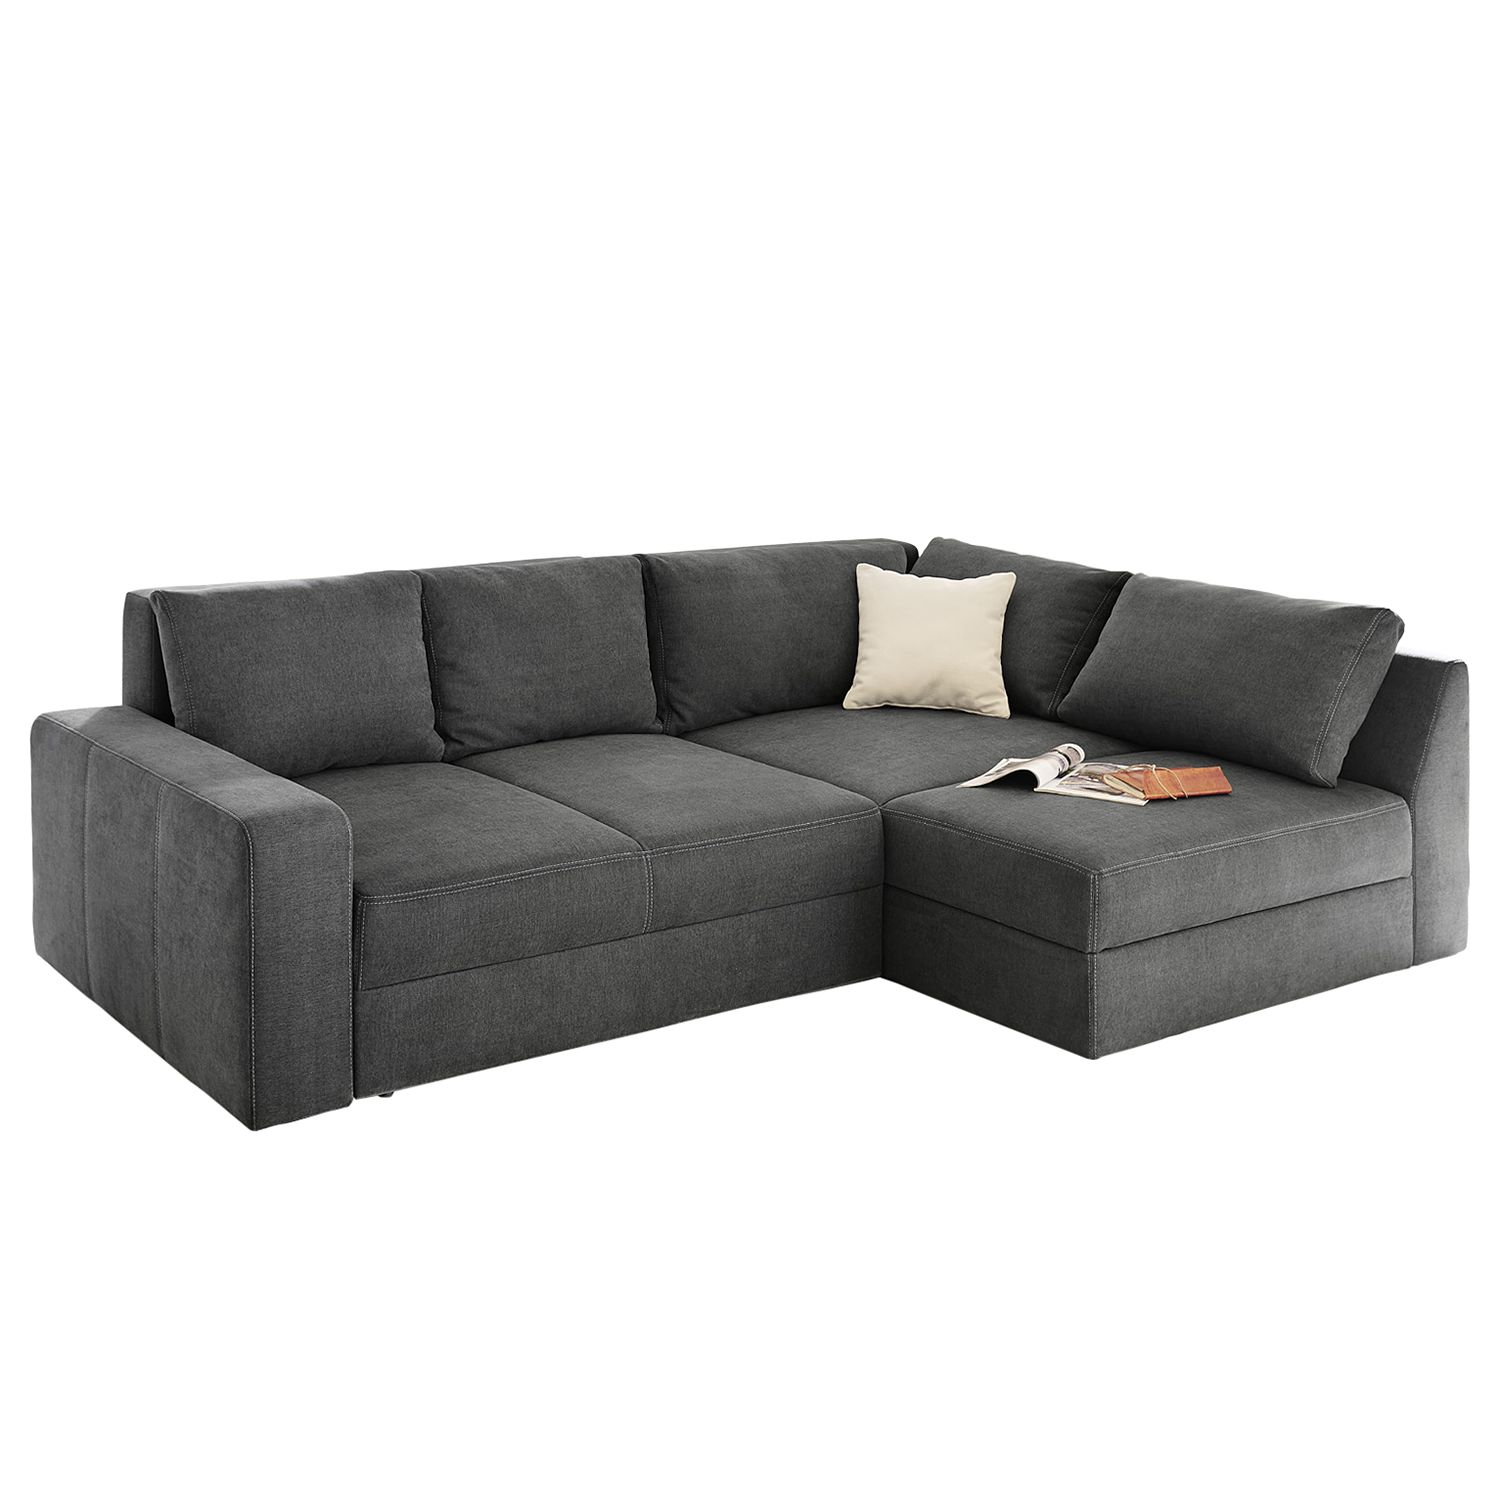 ecksofa mit schlaffunktion f r kleine r ume inspirierendes design f r wohnm bel. Black Bedroom Furniture Sets. Home Design Ideas